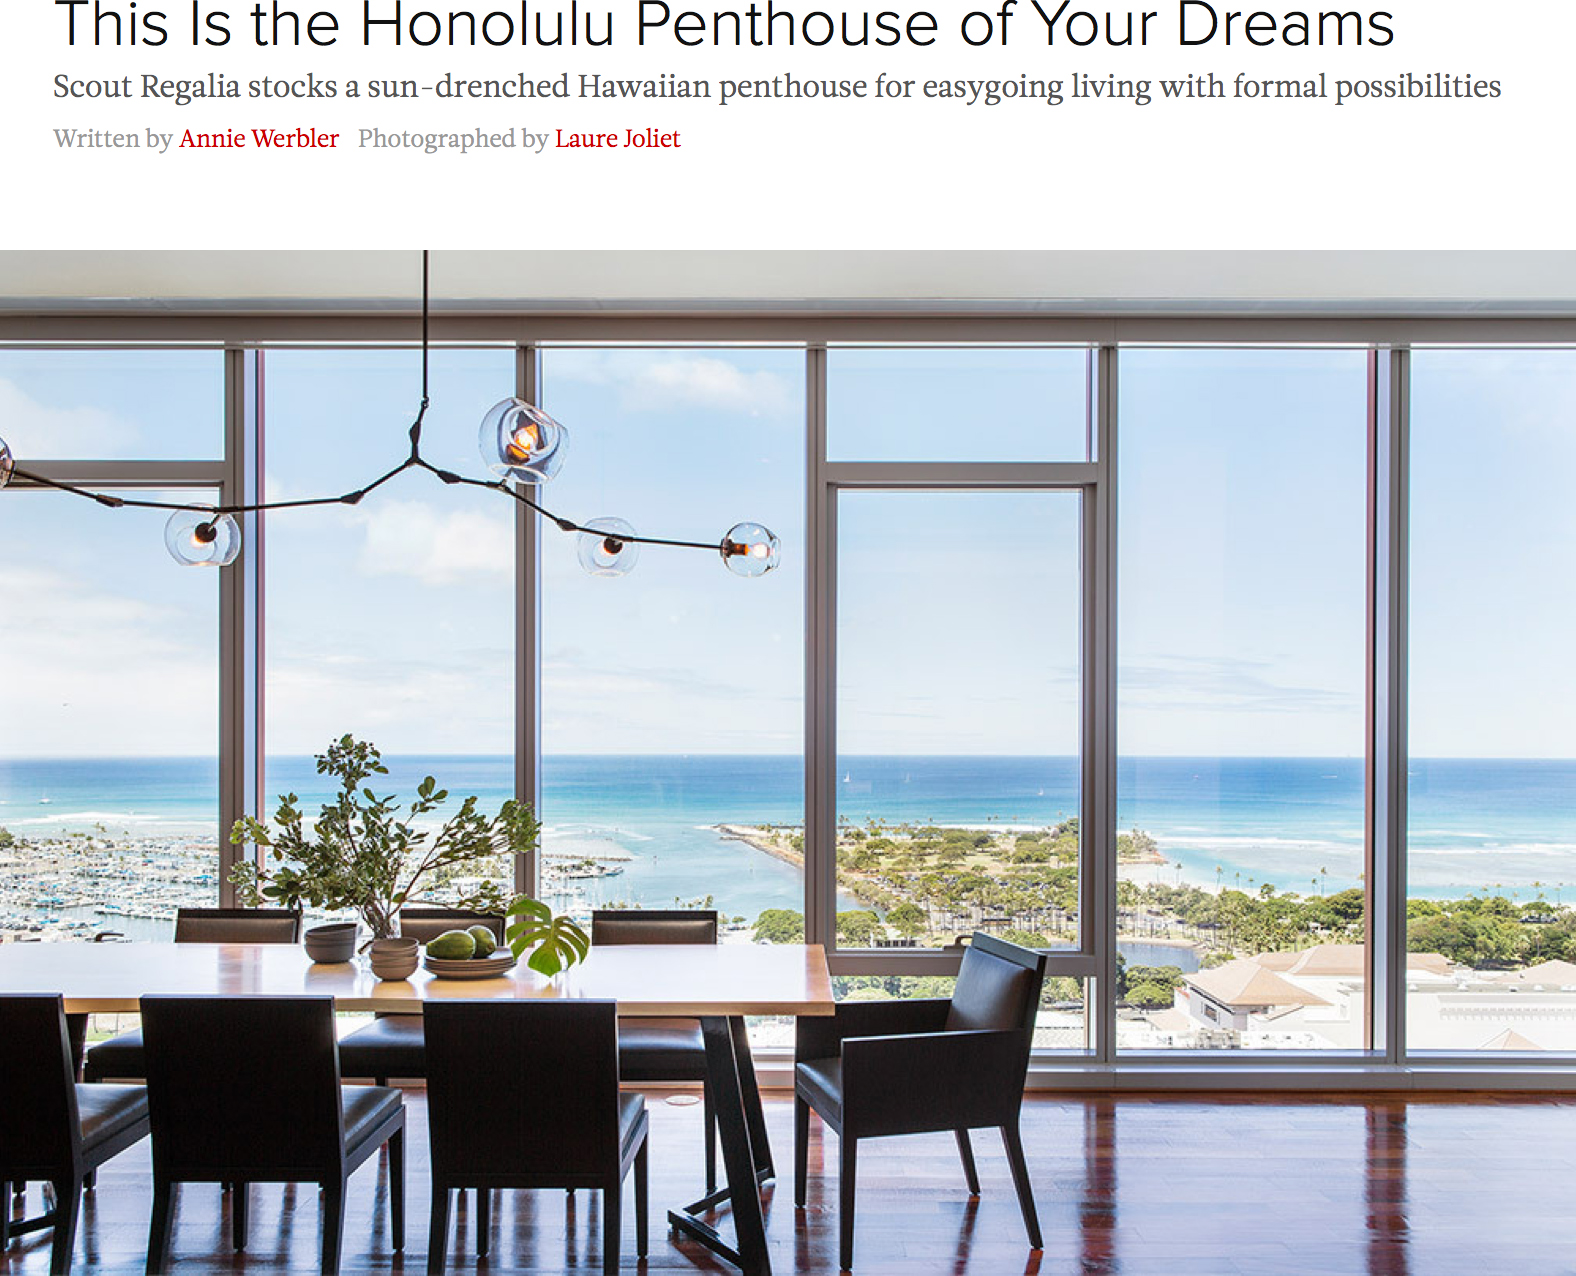 This Is the Honolulu Penthouse of Your Dreams